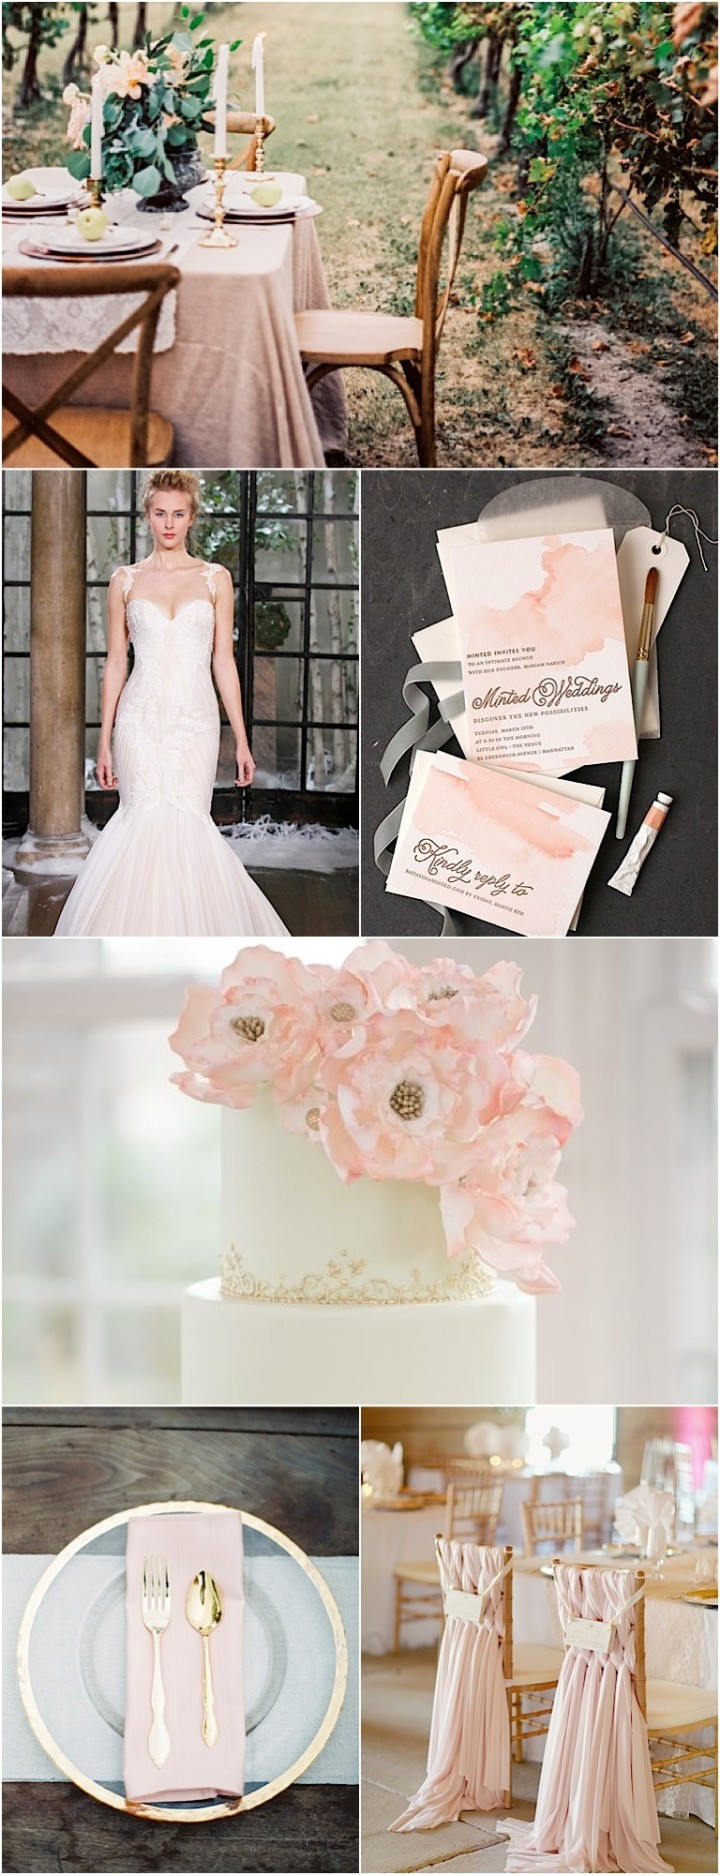 wedding-ideas-31-04162015-ky